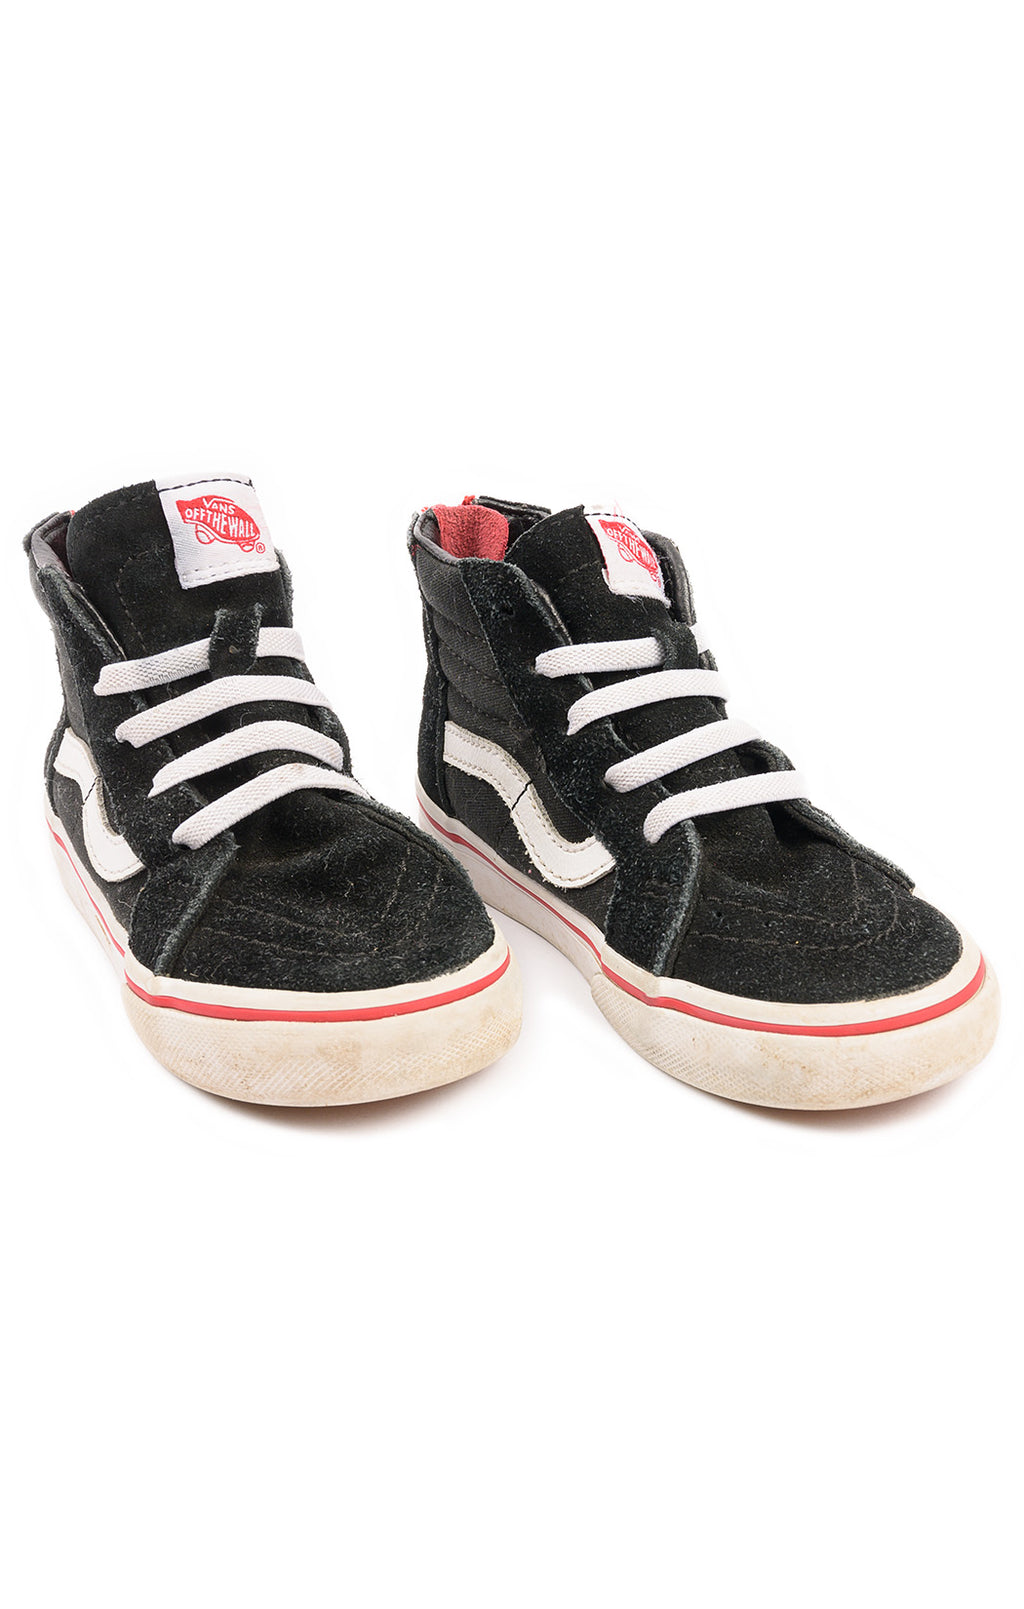 VAN'S Tennis shoes Size: 9T